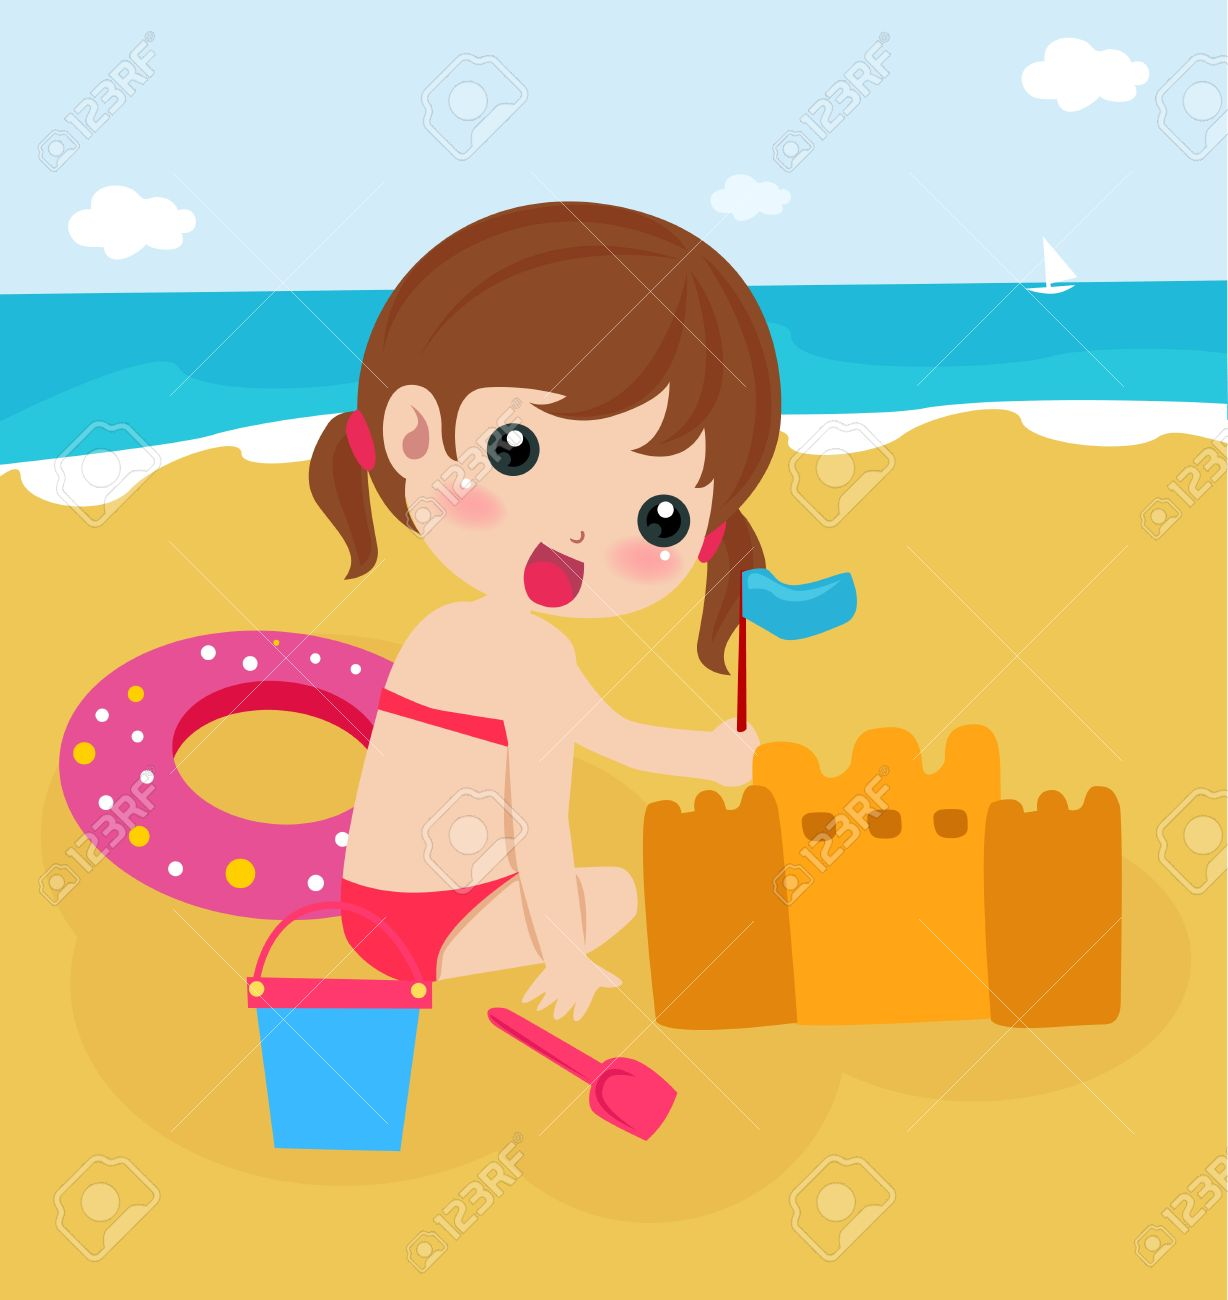 Beach girl clipart 4 » Clipart Station.